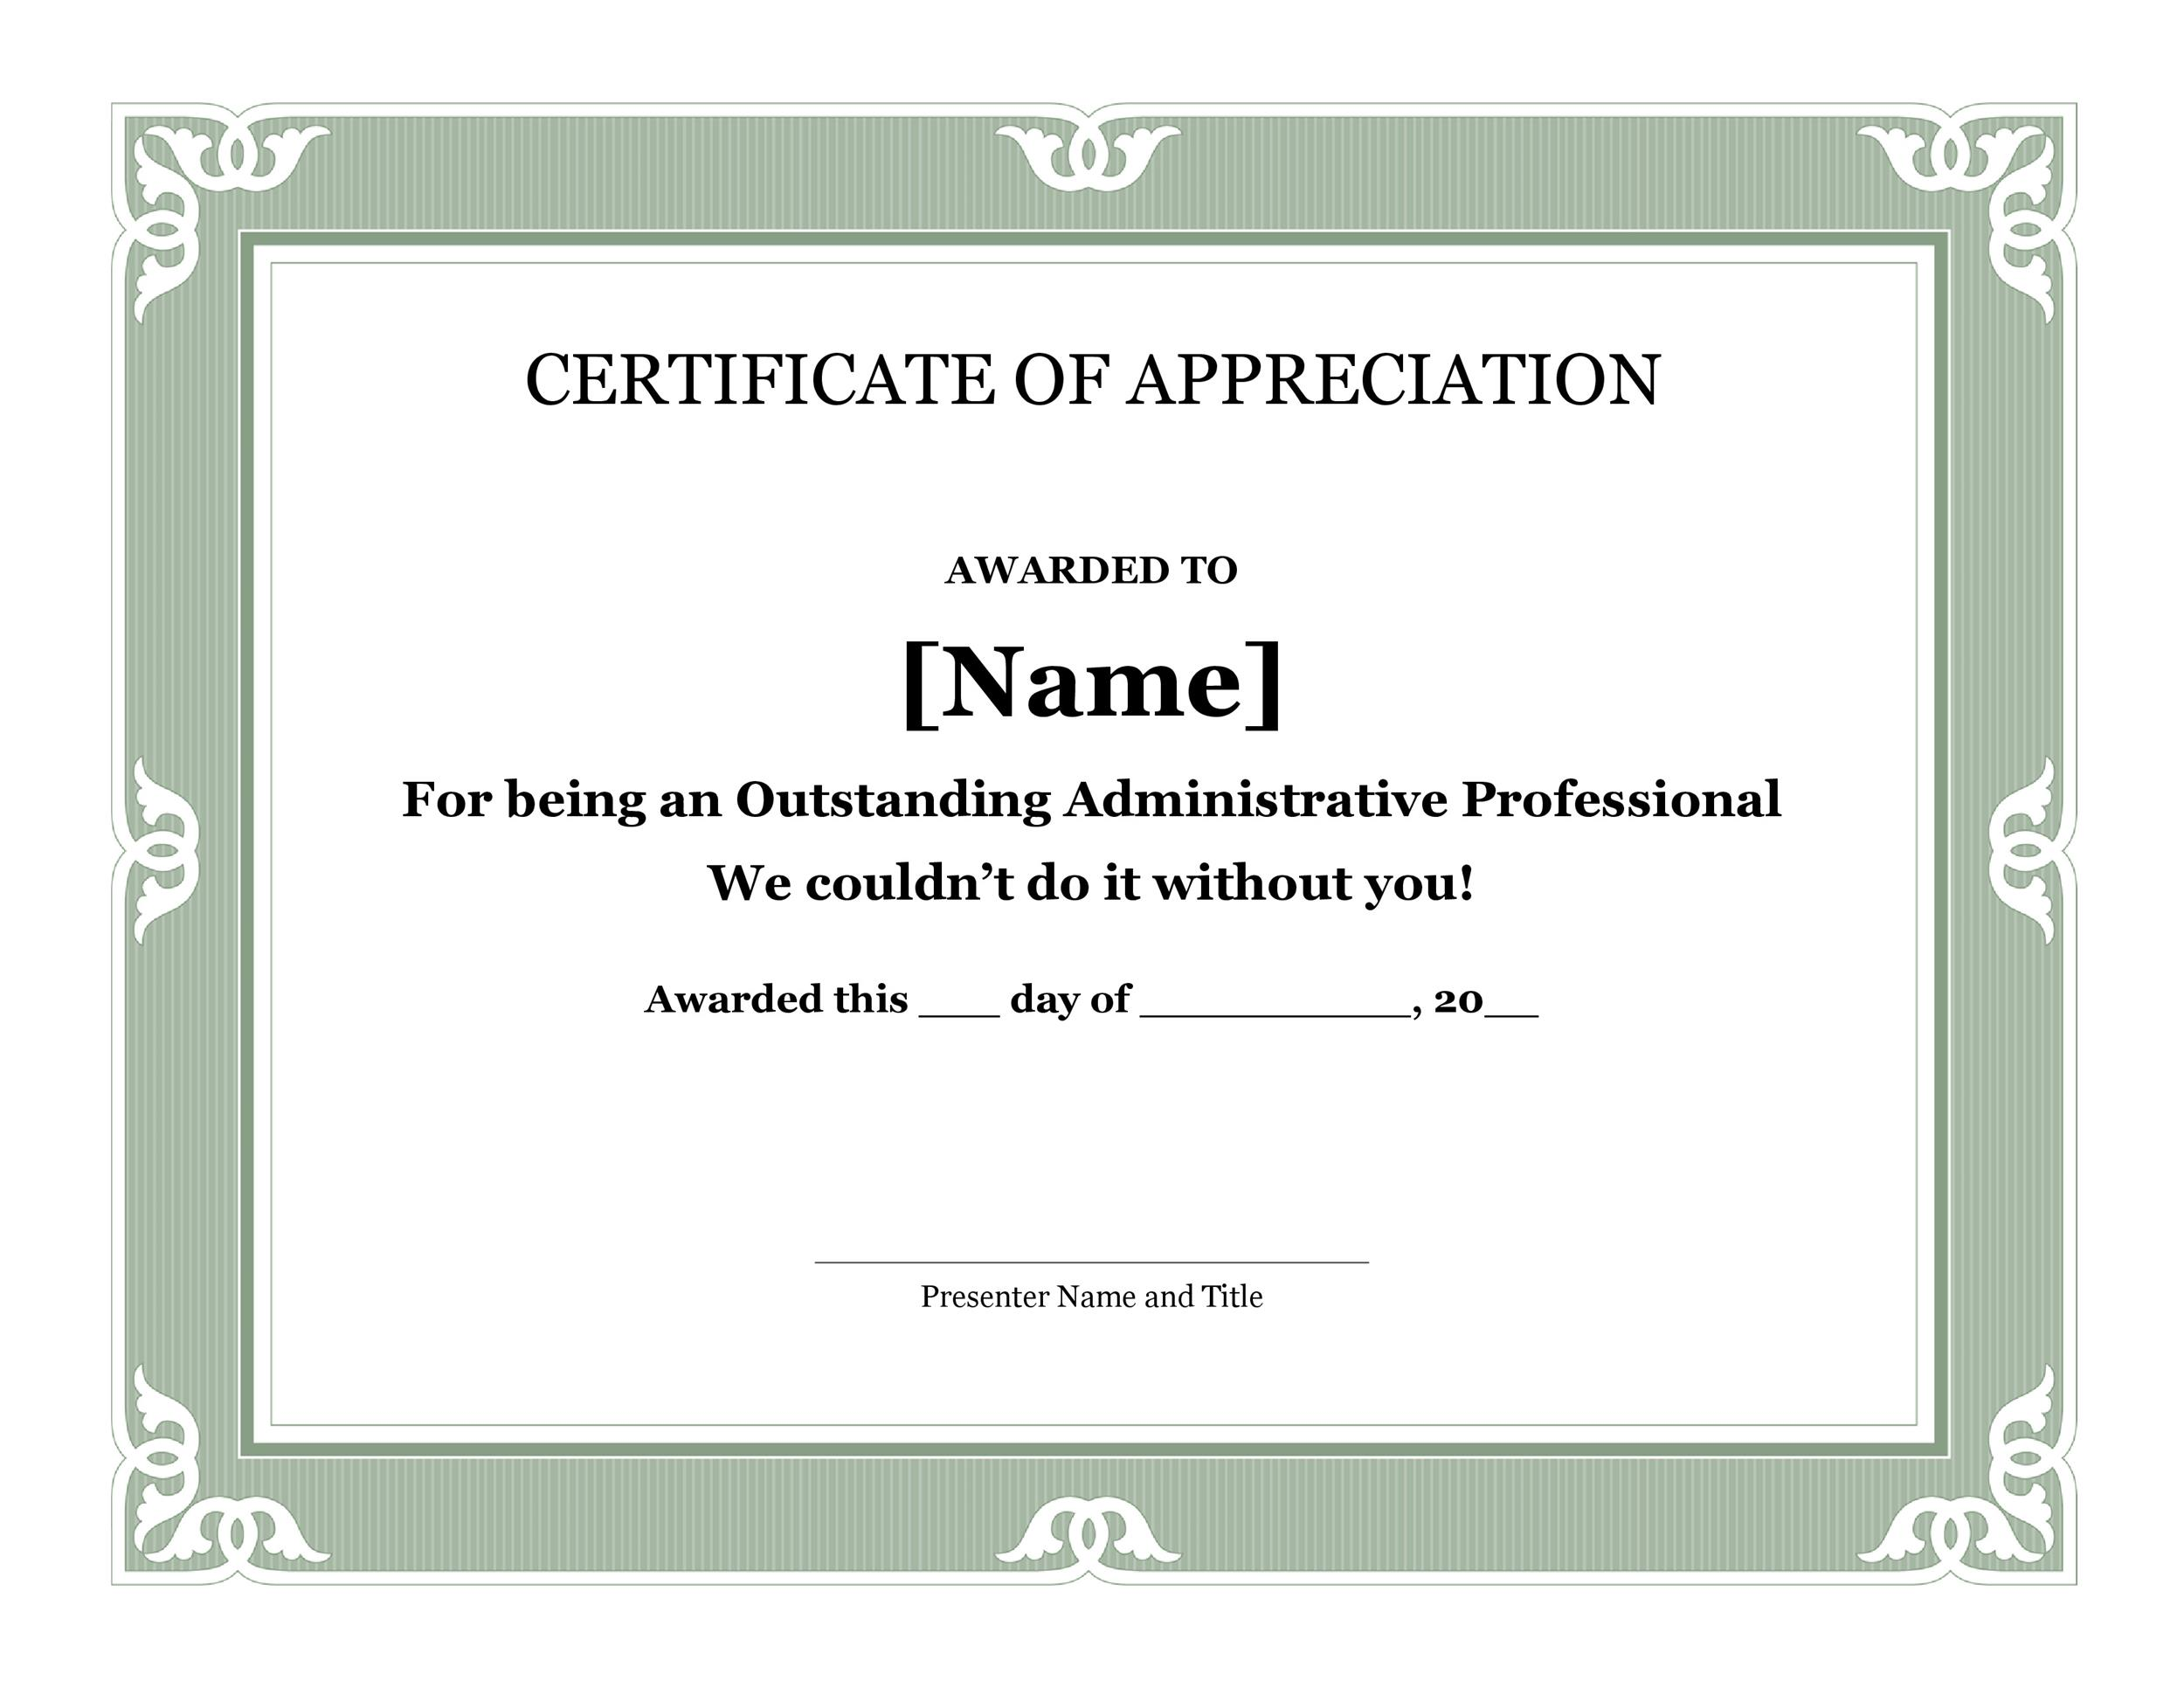 30 free certificate of appreciation templates and letters printable certificate of appreciation 18 yadclub Image collections